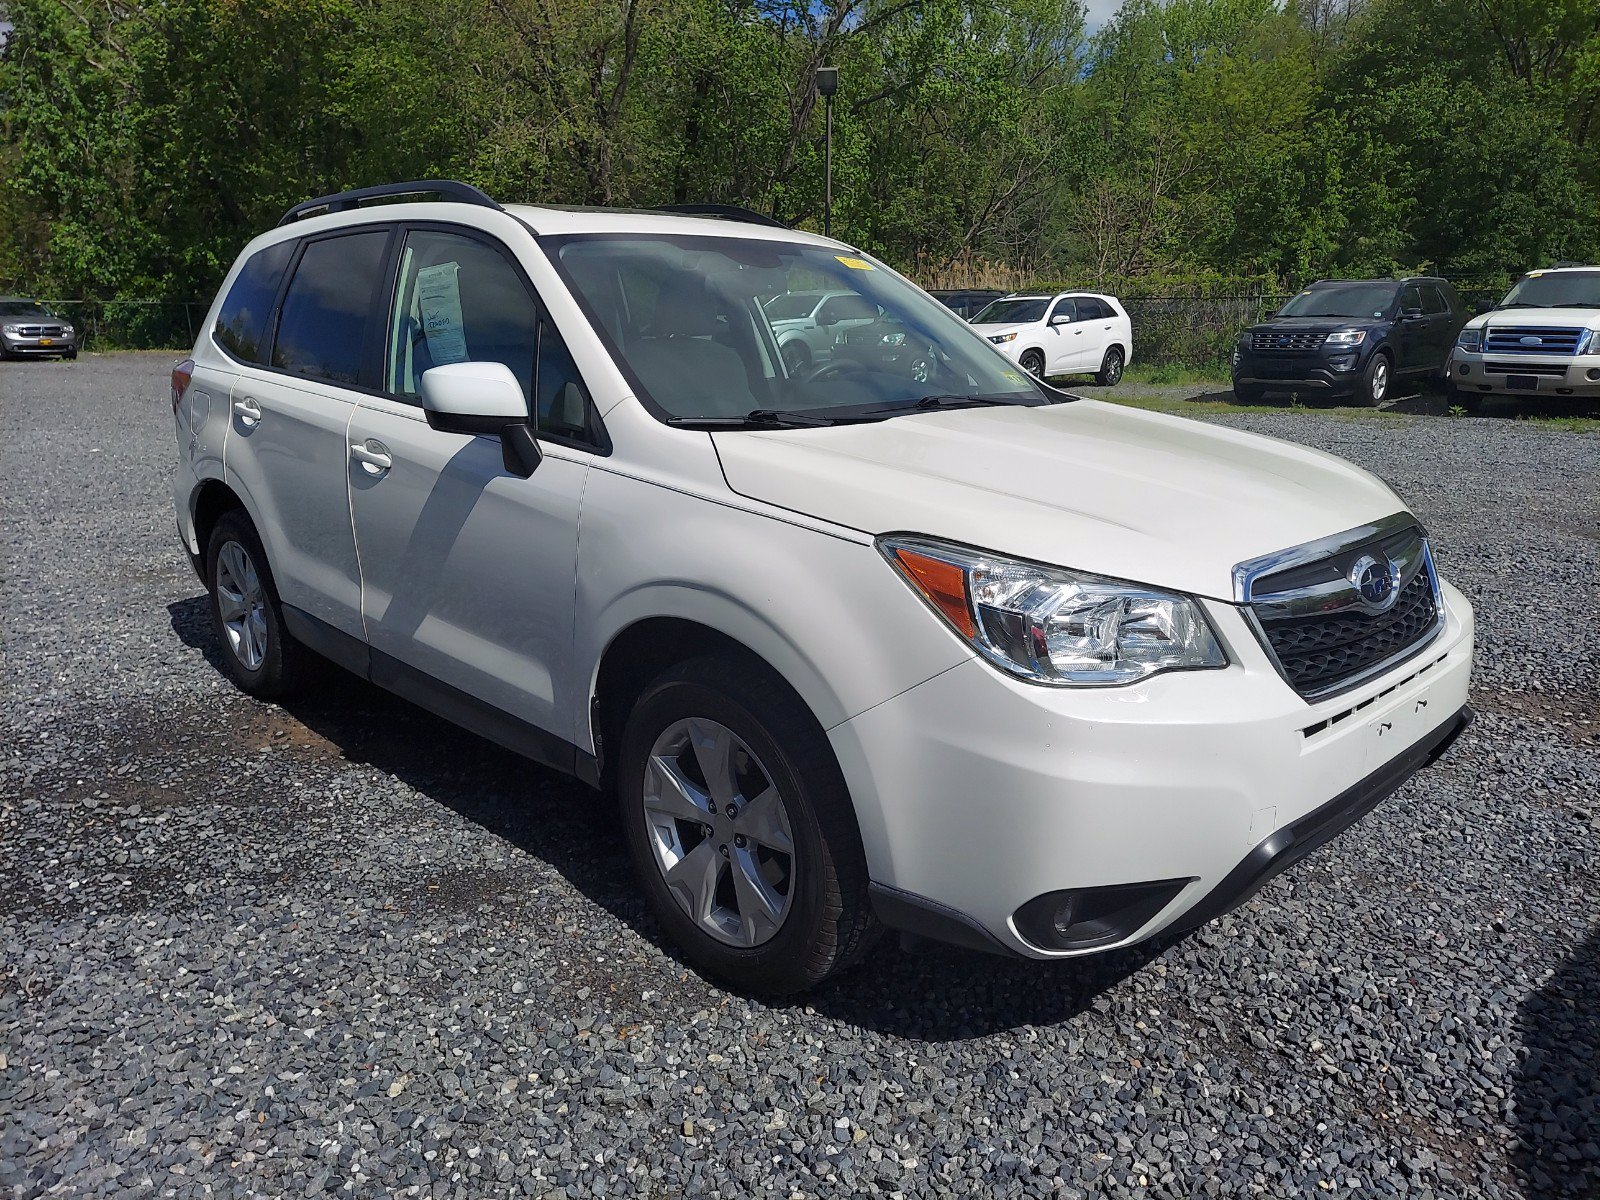 Used Subaru Forester East Windsor Nj